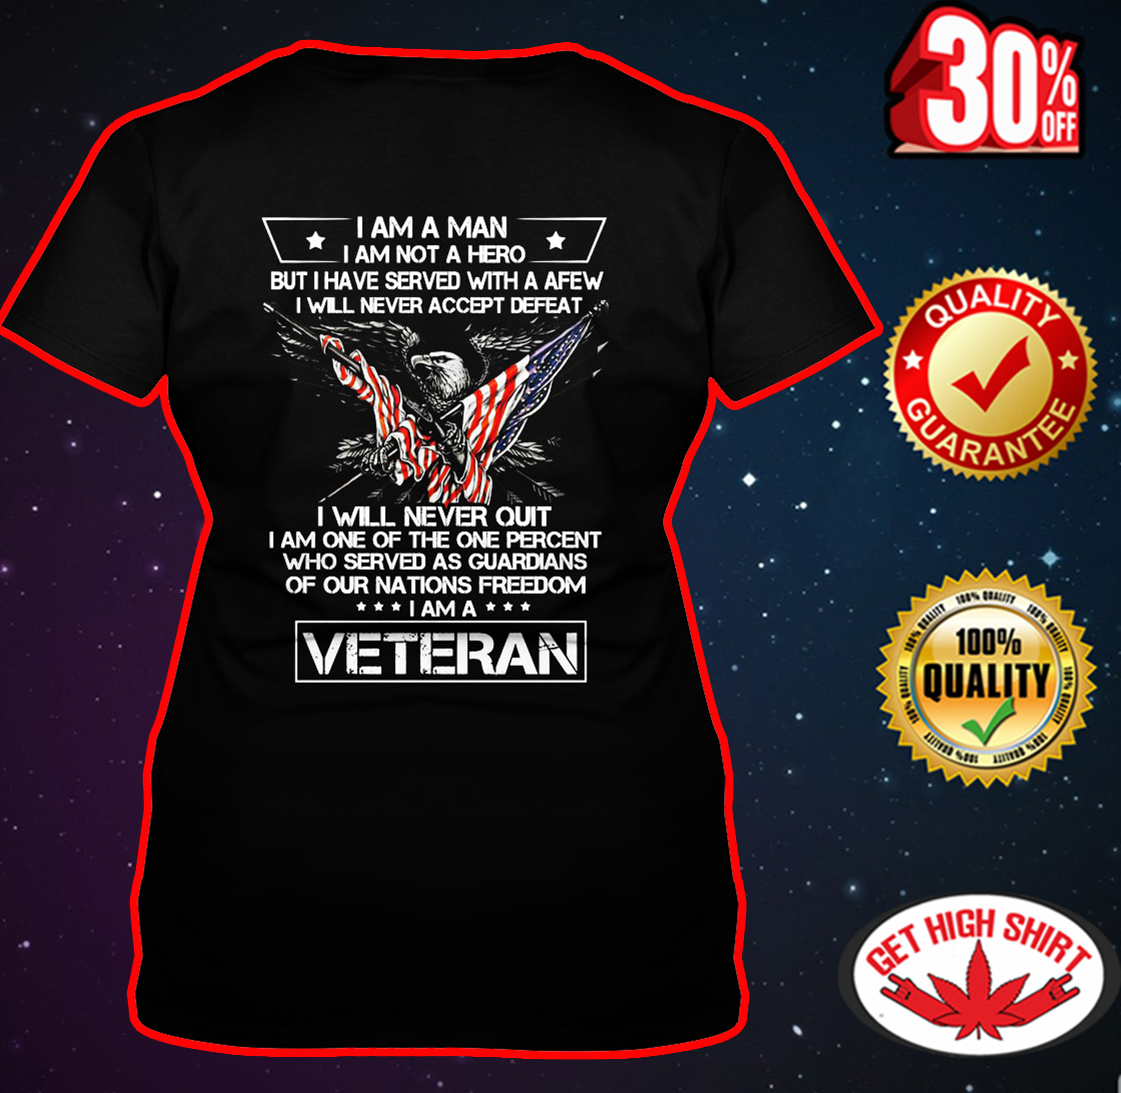 I am a man I am not a hero I am a Veteran v-neck